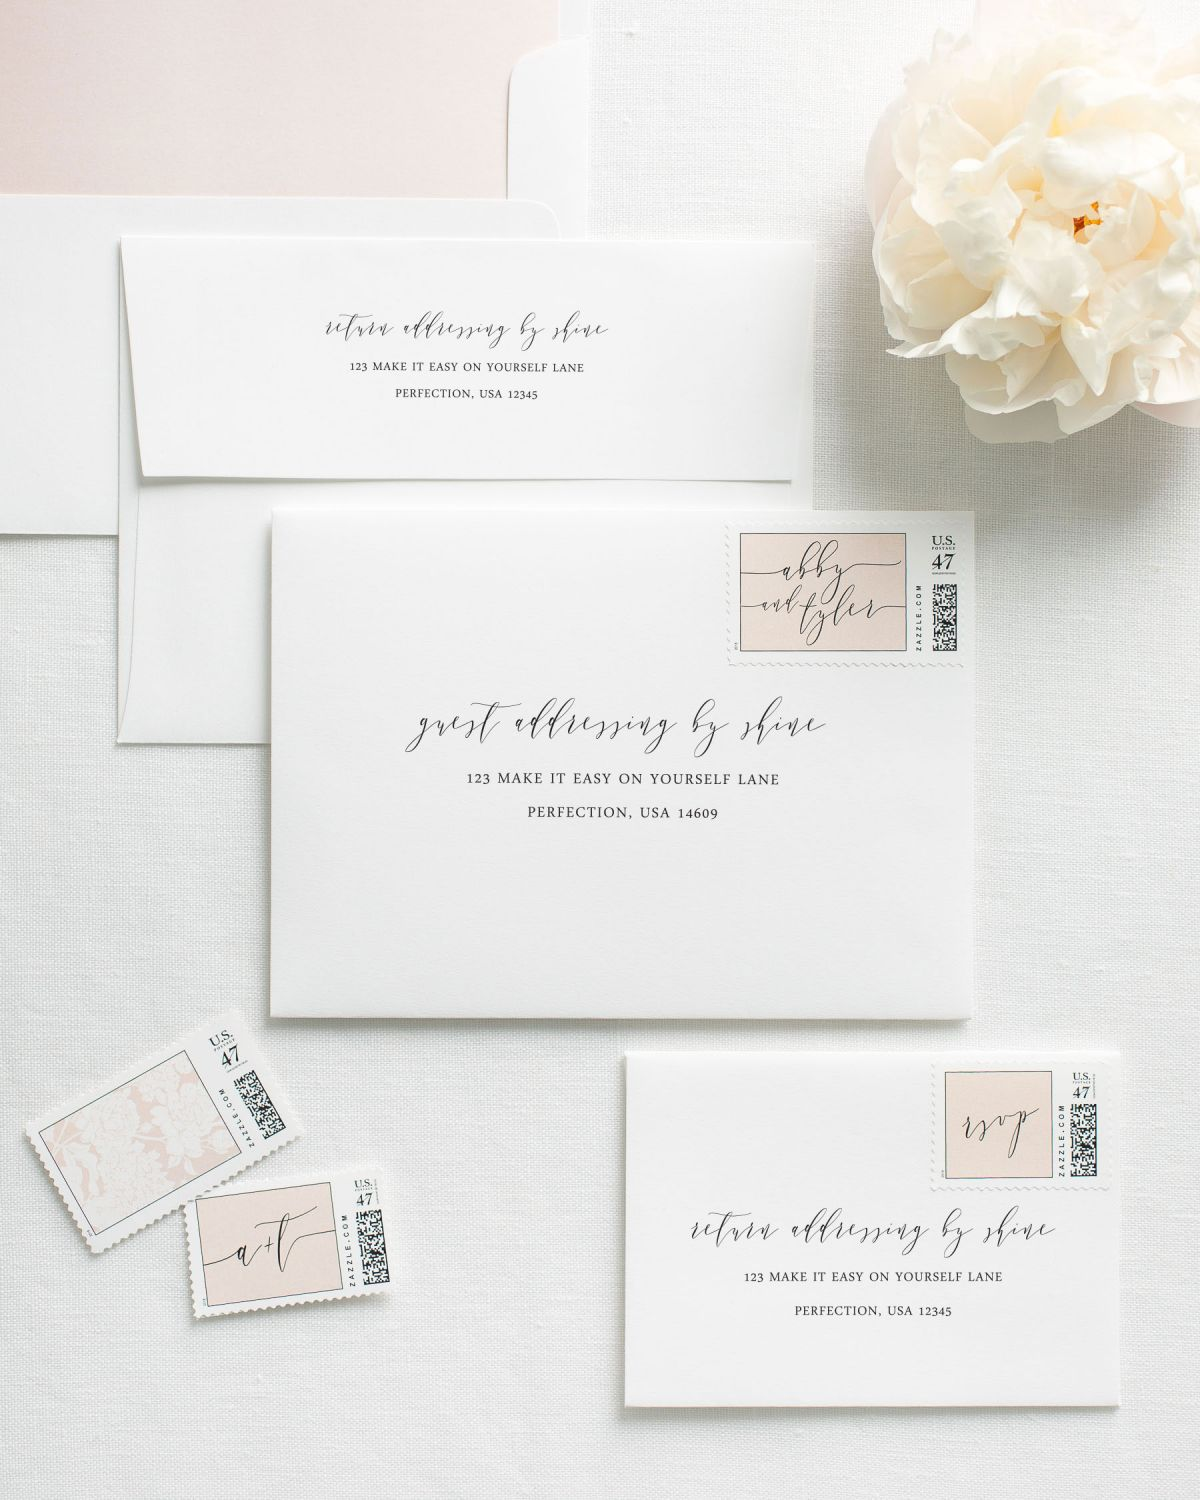 Letterpress Wedding Invitations with Addressed Envelopes